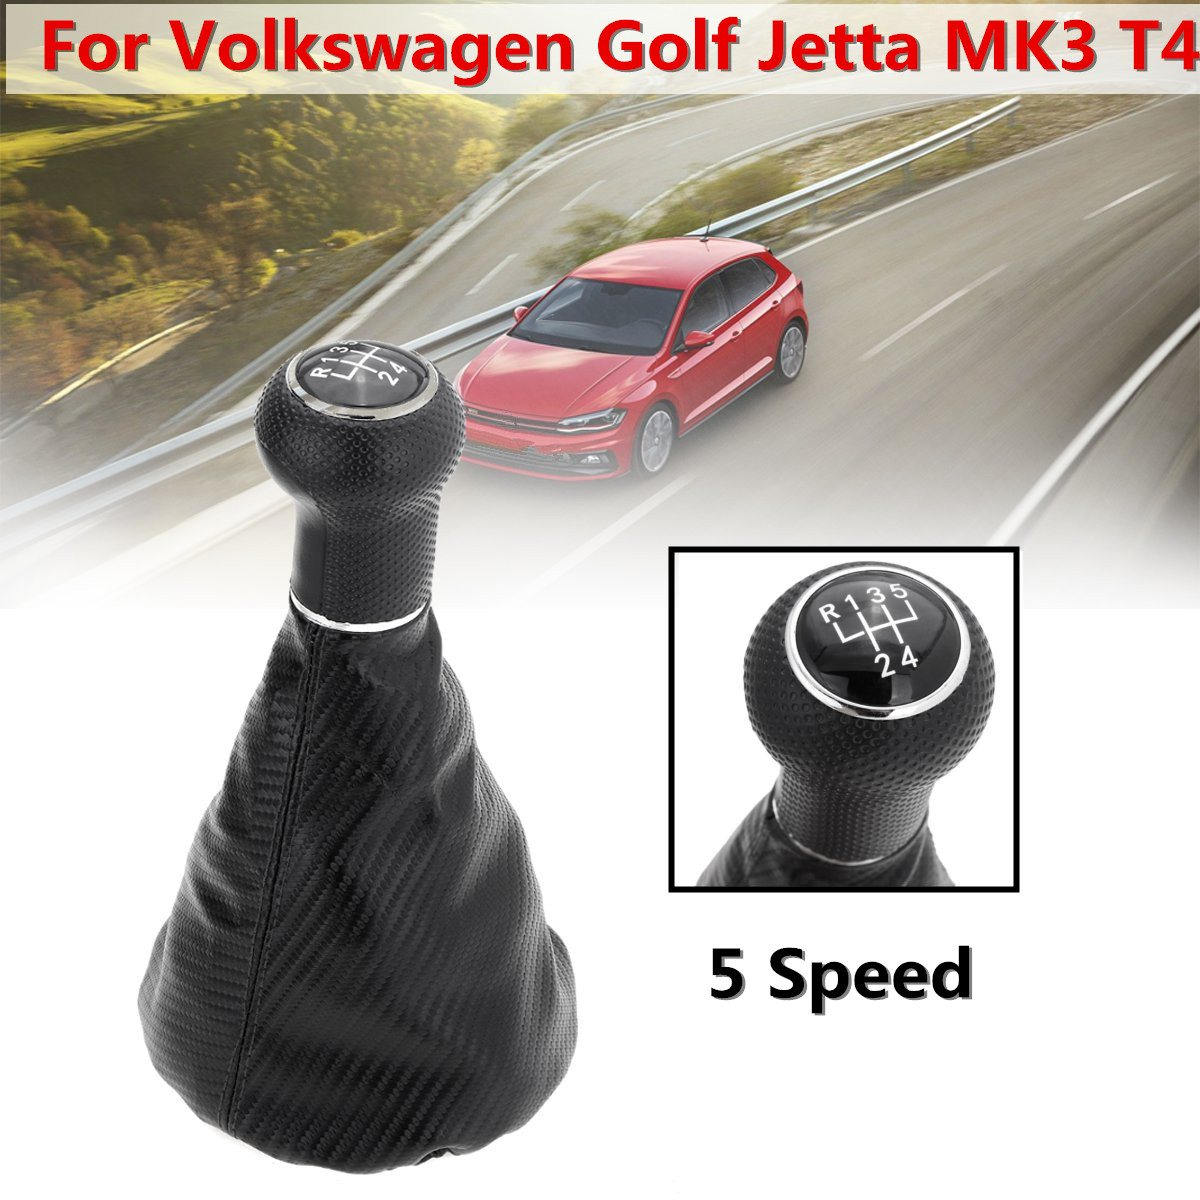 5 Speed Car <font><b>Gear</b></font> Shift <font><b>Knob</b></font> Gaiter Boot For <font><b>VW</b></font> <font><b>Golf</b></font> <font><b>MK3</b></font> T4 Carbon Fiber Leather <font><b>Gear</b></font> Shift <font><b>Knobs</b></font> Cover image